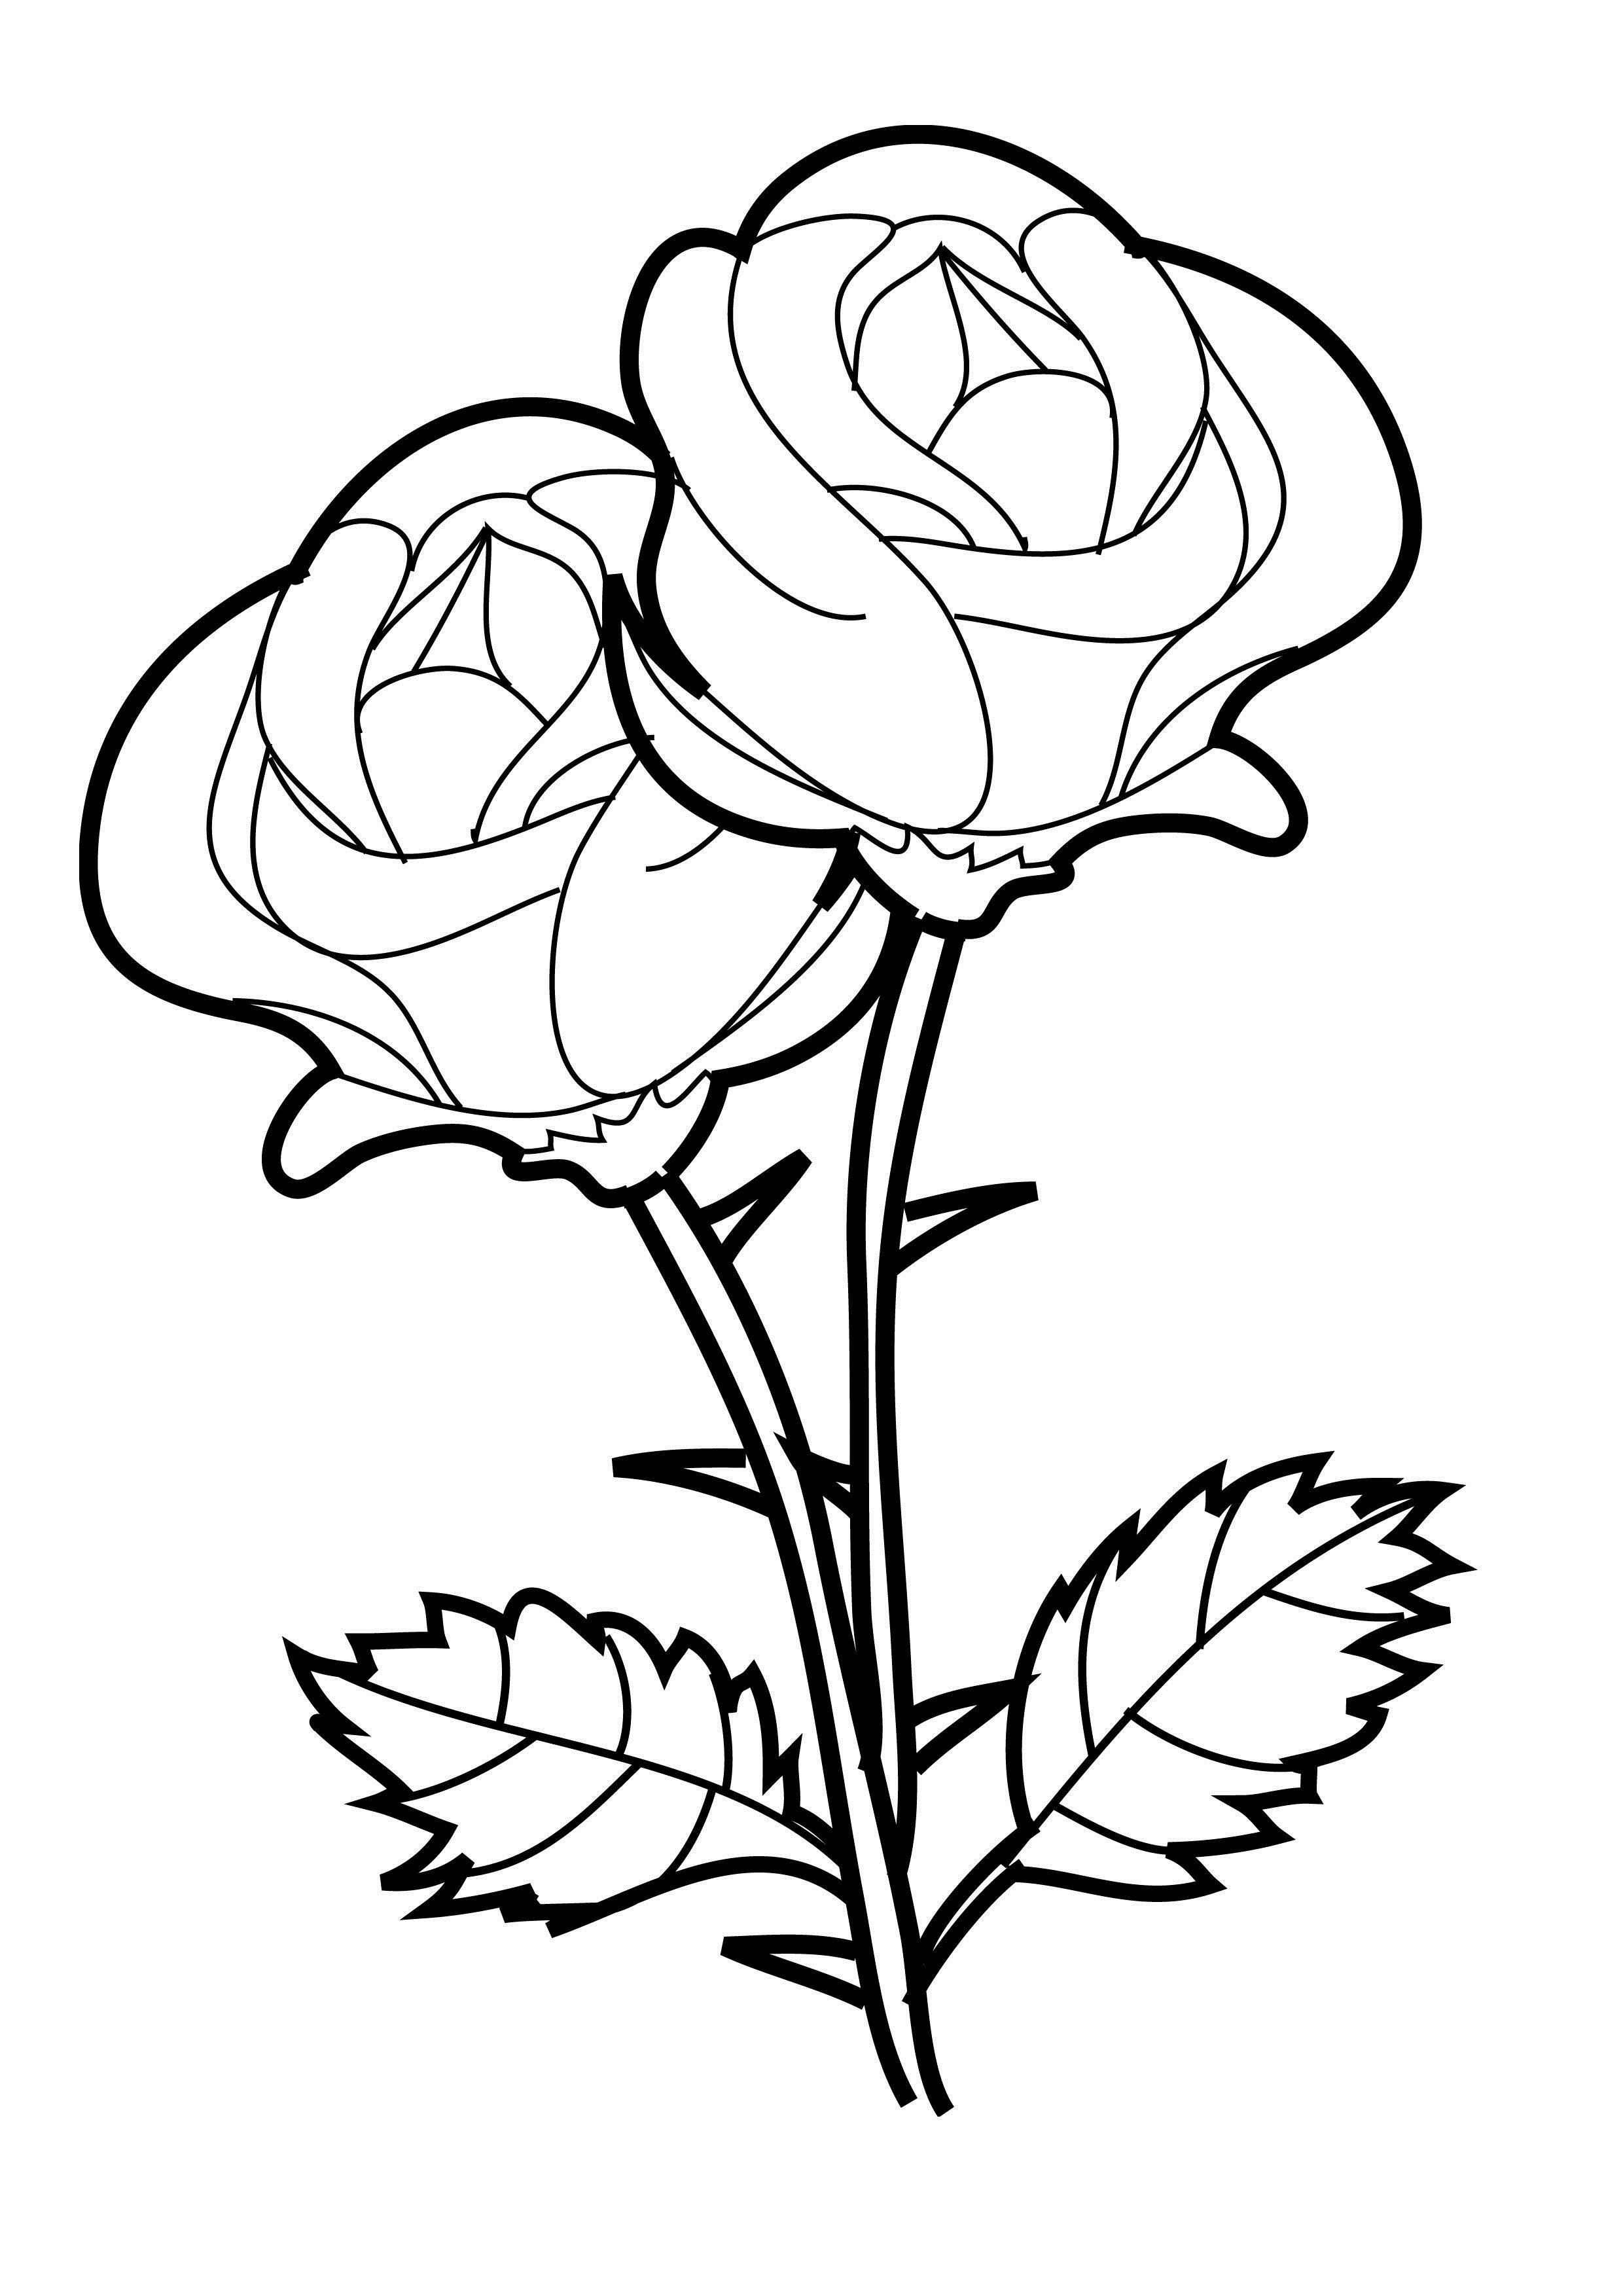 rose coloring page free printable roses coloring pages for kids coloring rose page